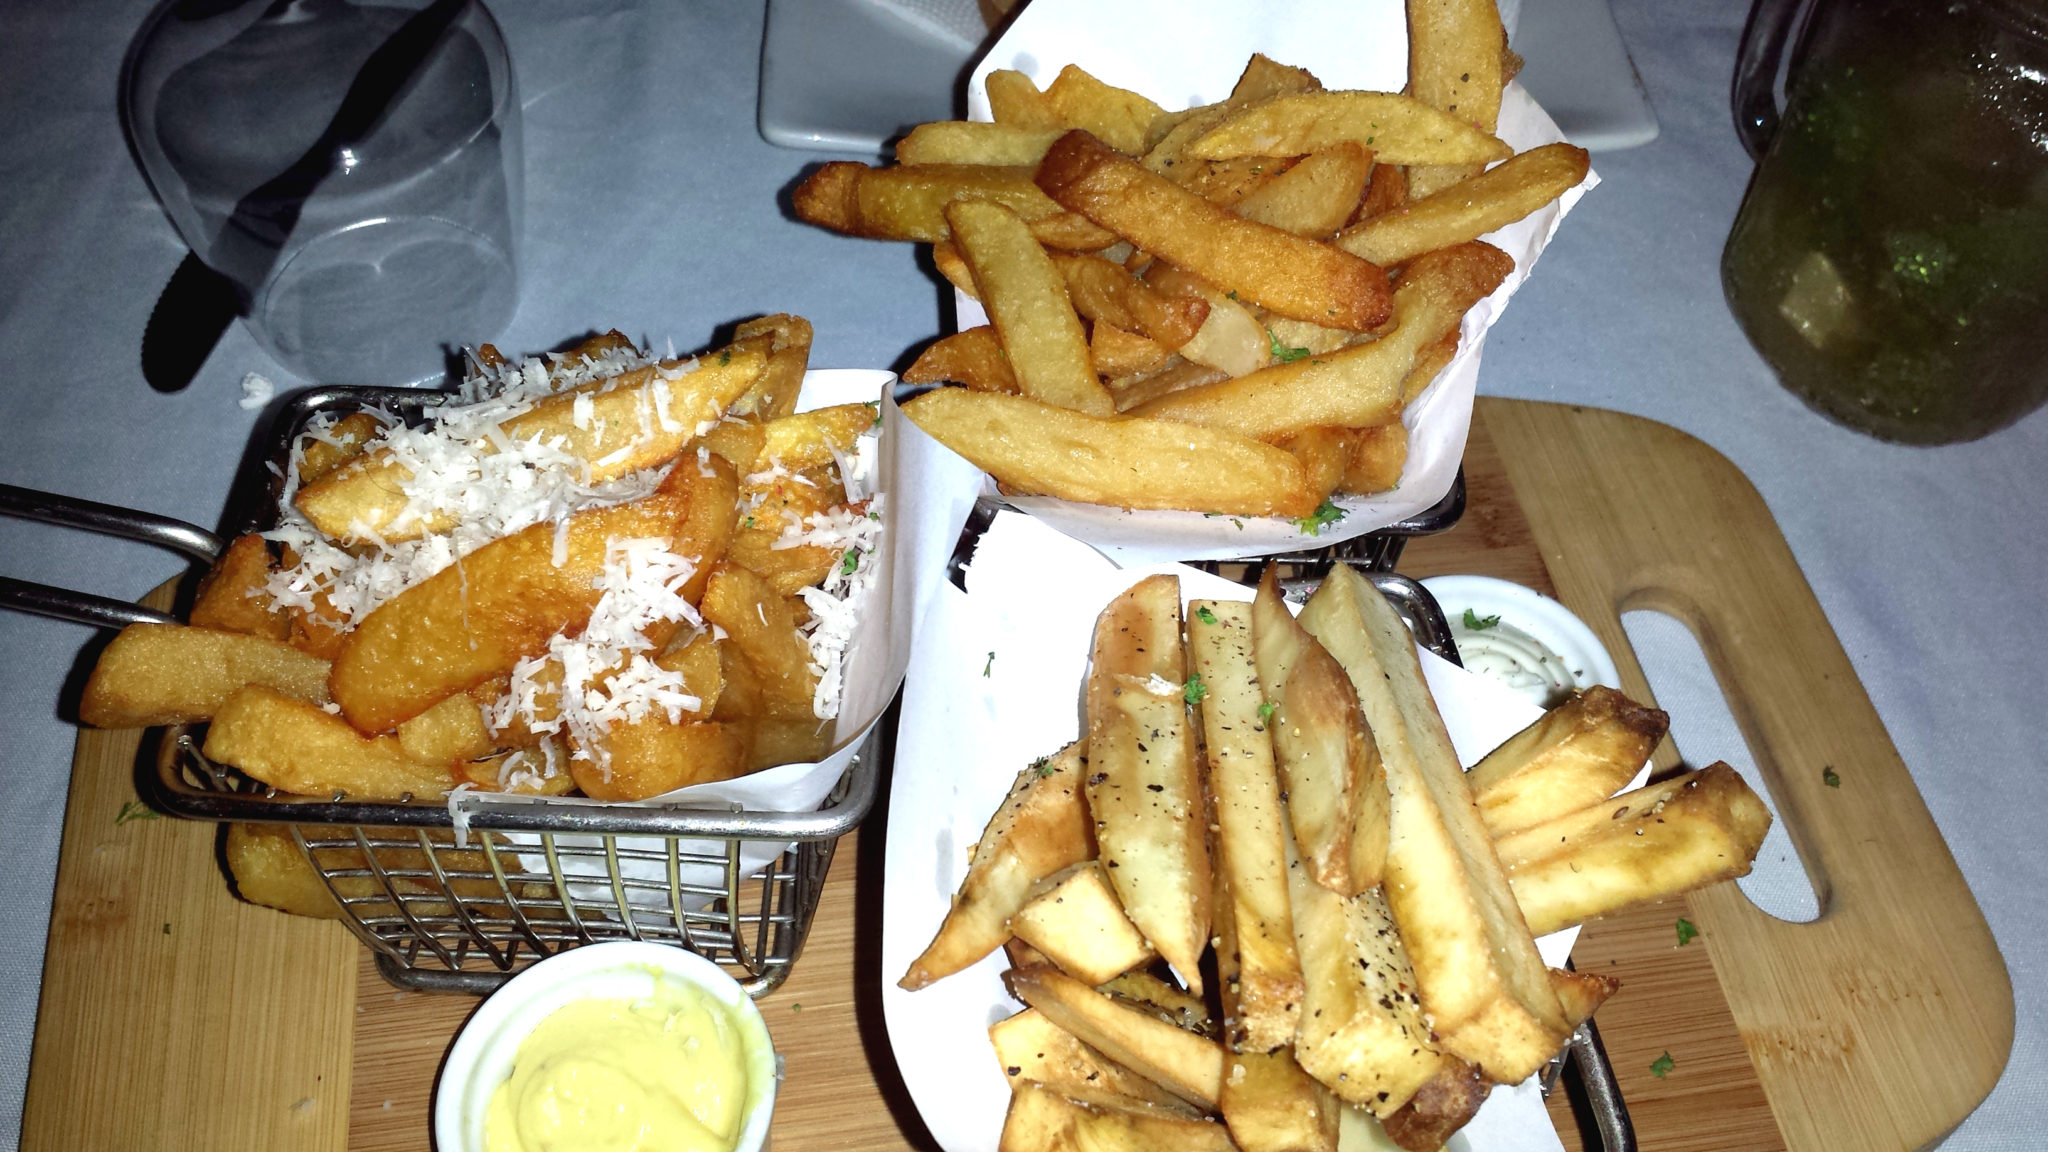 Republique_dominicaine_mes_bonnes_adresses_bayahibe_restaurant_saona_cafe_veggie_threesome_french_fries